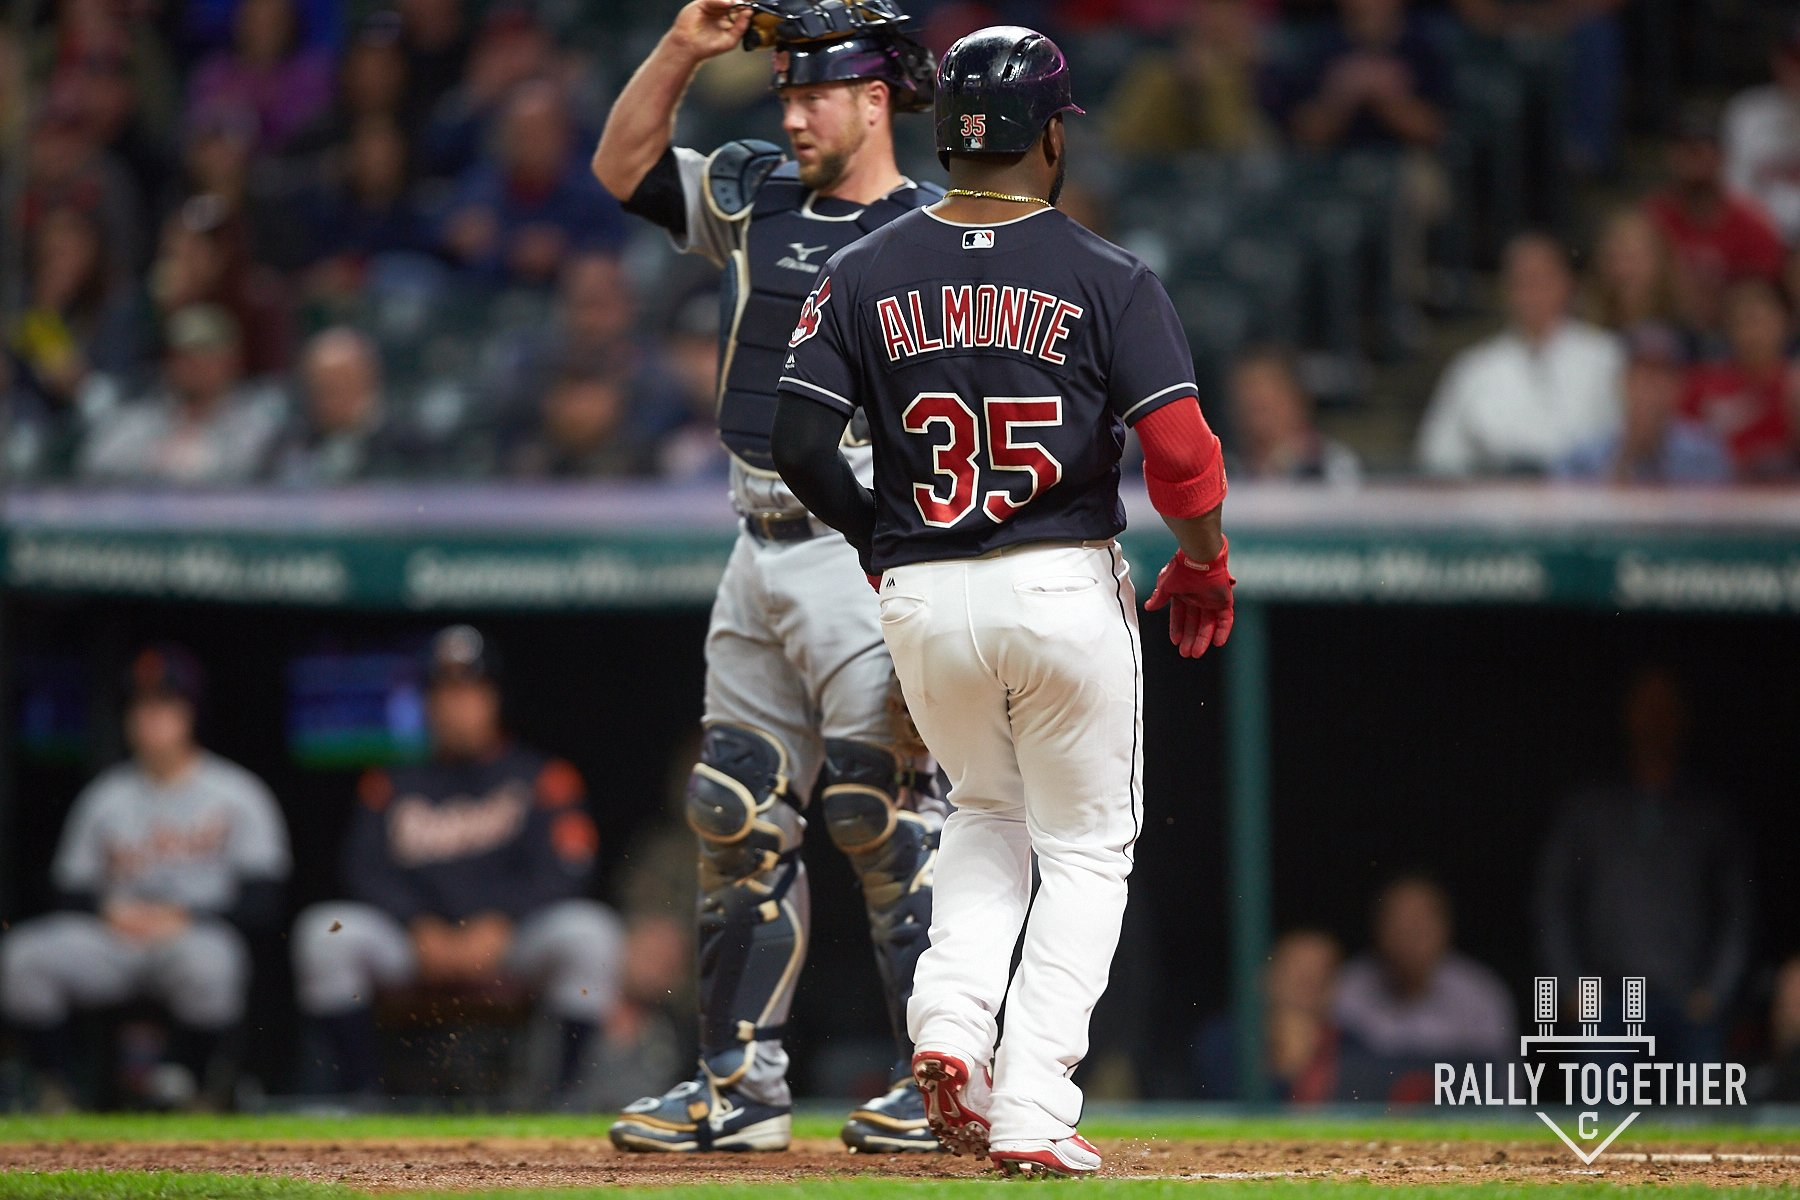 BTW we scored two insurance runs in the eighth to make it 11-0.  Let's close this out! #RallyTogether https://t.co/G4L6EQnYSG